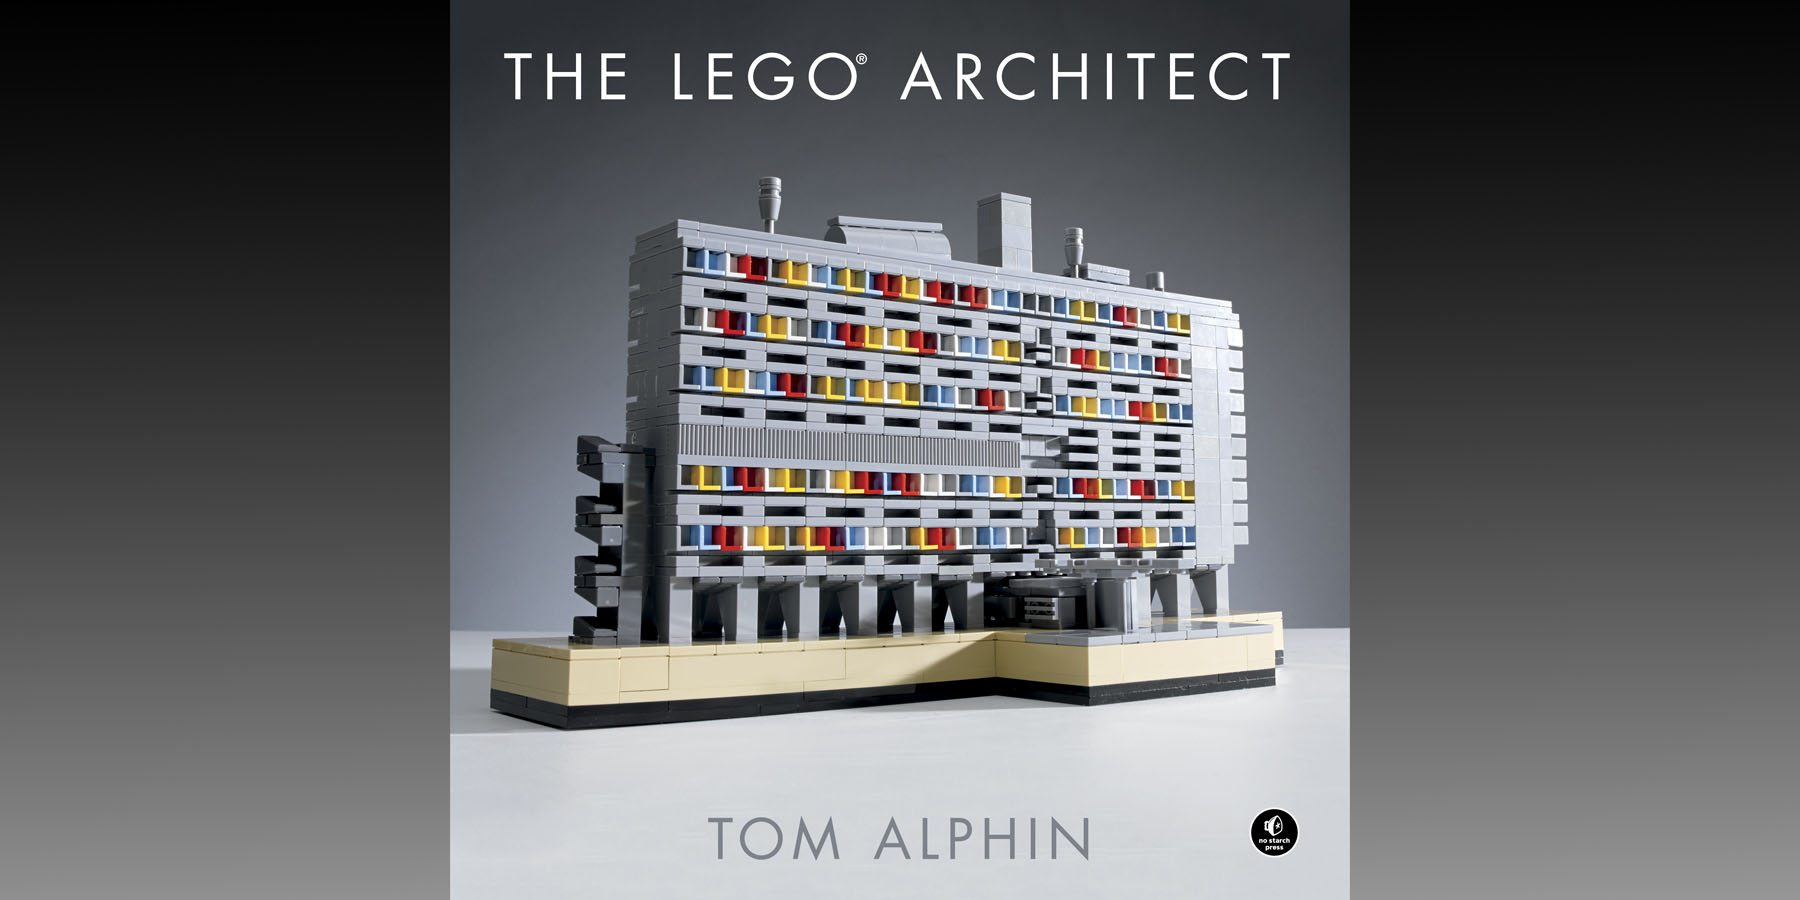 Become a LEGO Architect With 'The LEGO Architect' by Tom Alphin